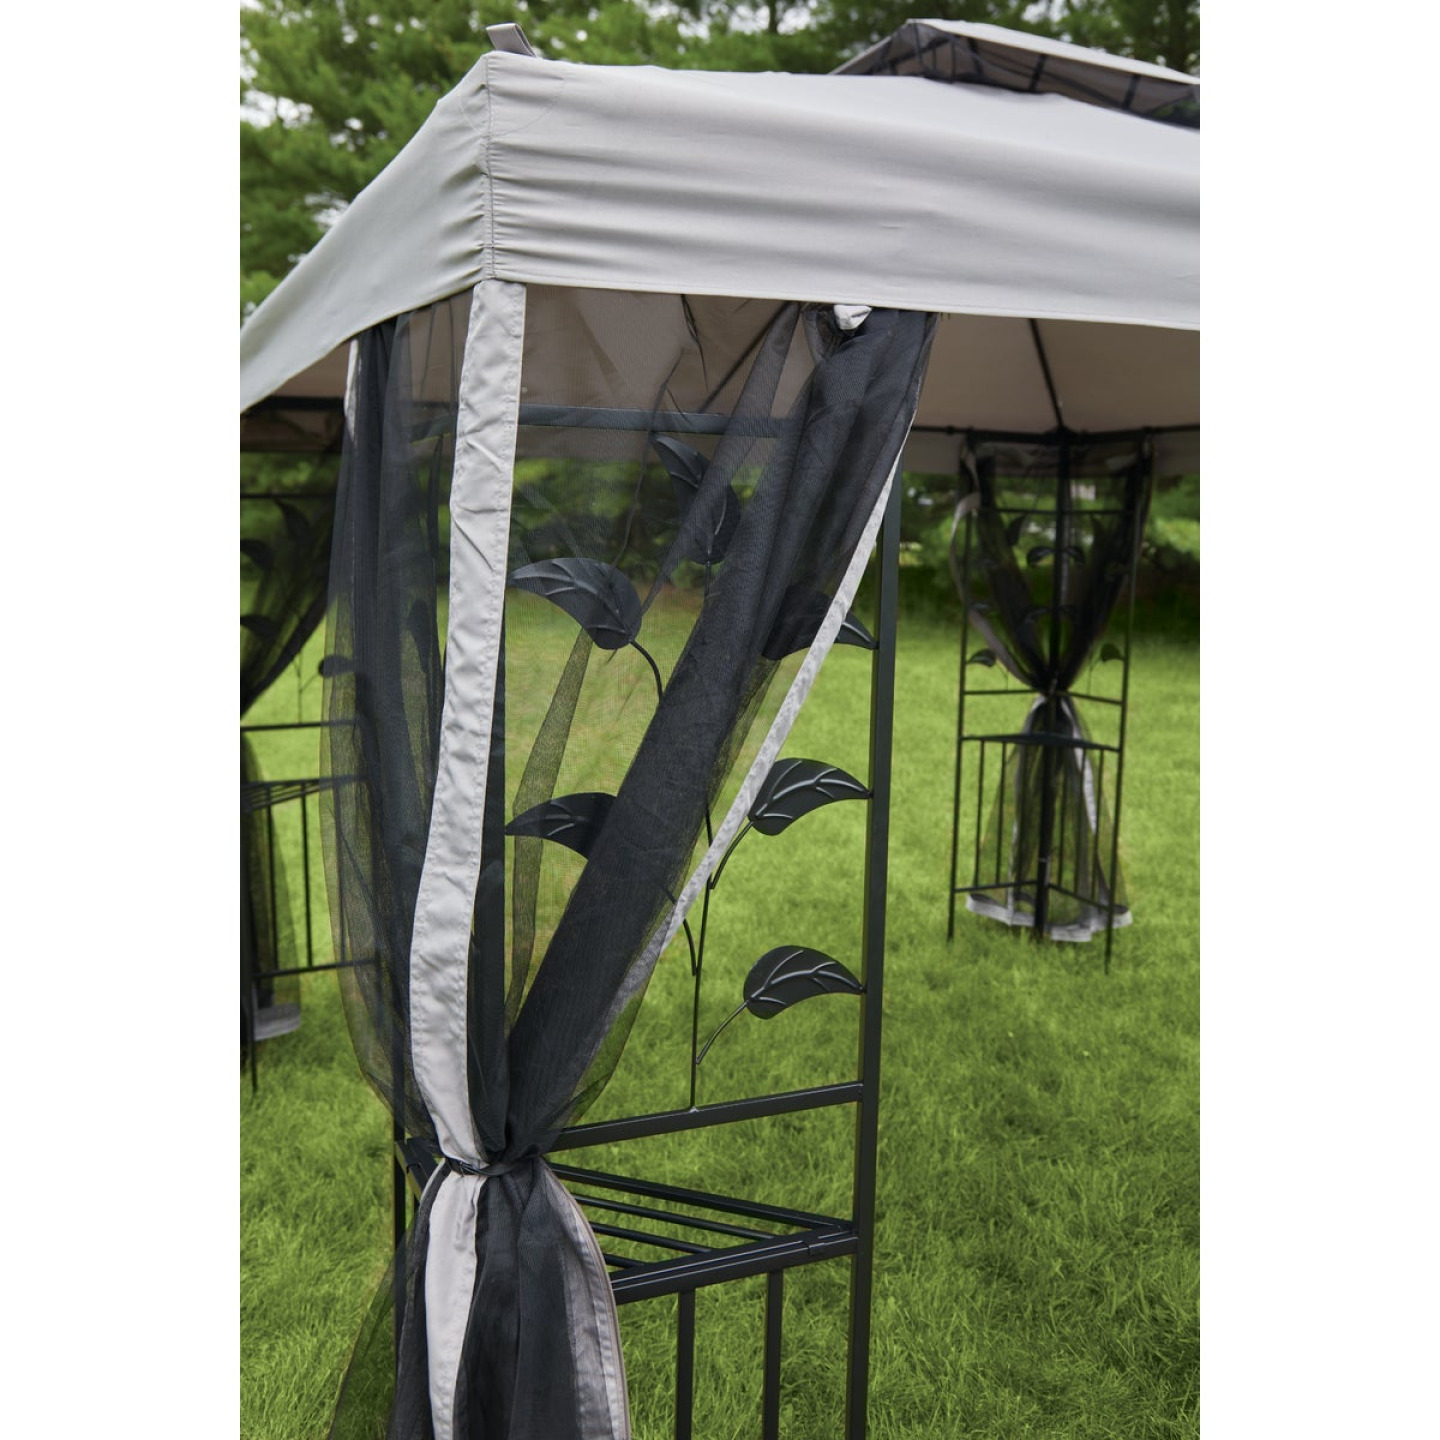 Outdoor Expressions 12 Ft. x 12 Ft. Gray & Black Steel Gazebo with Sides Image 8